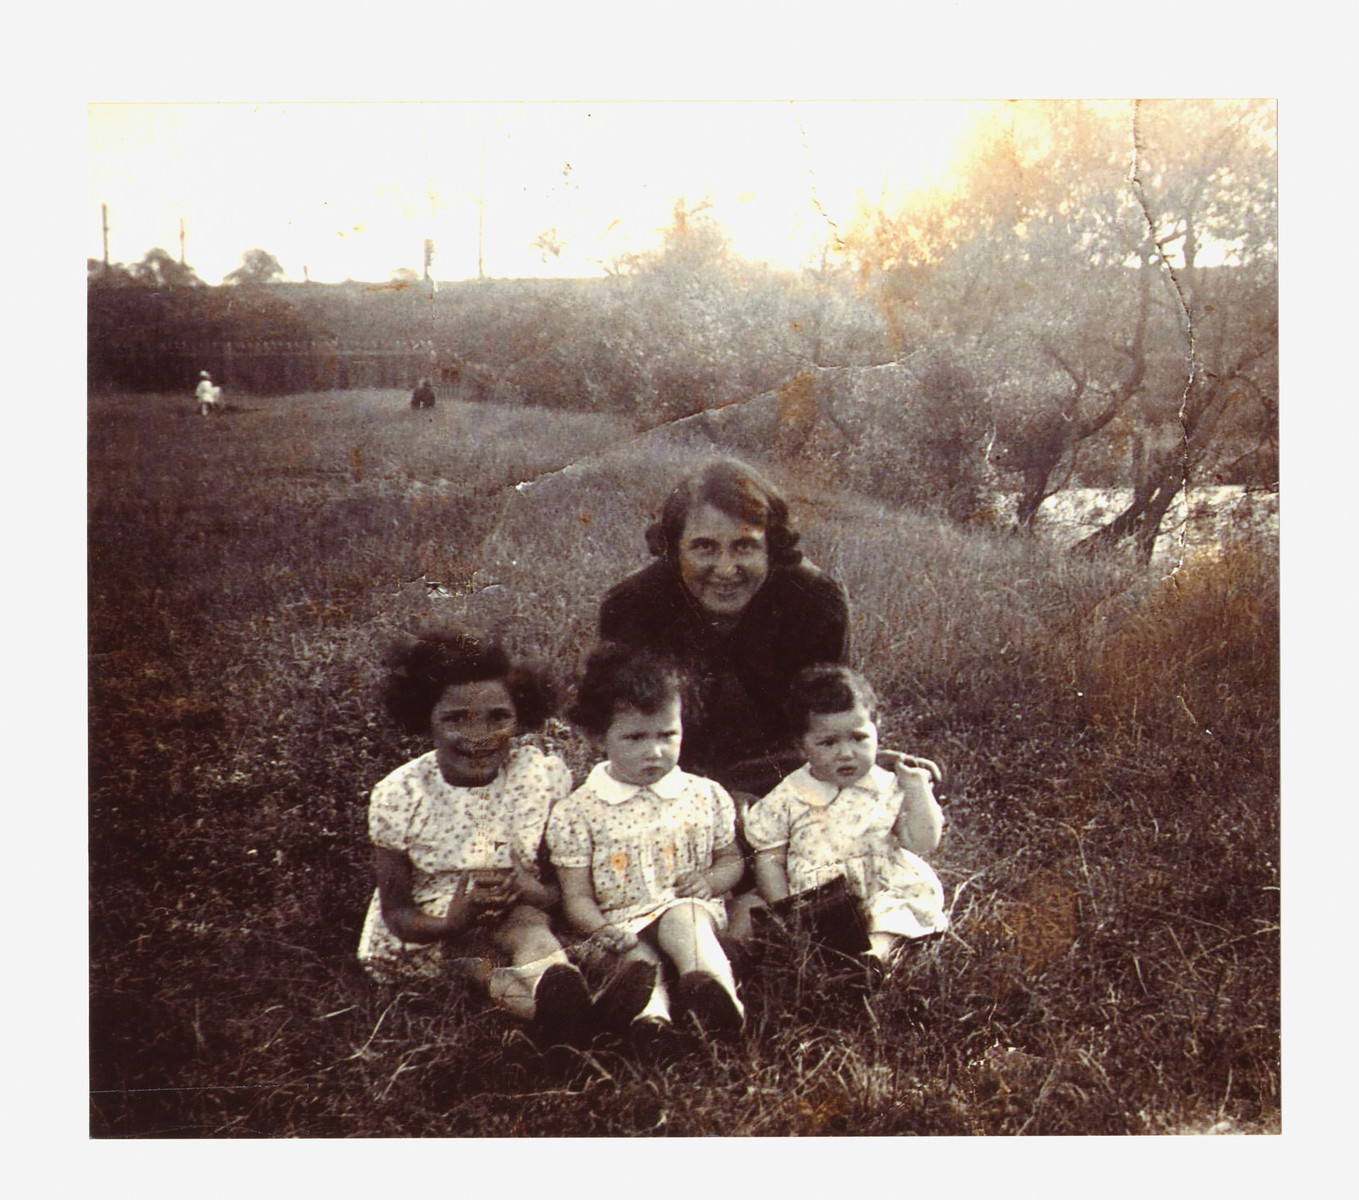 Dora Teitelbaum poses in a field with her three young daughters, Bertha, Malka and Bella.